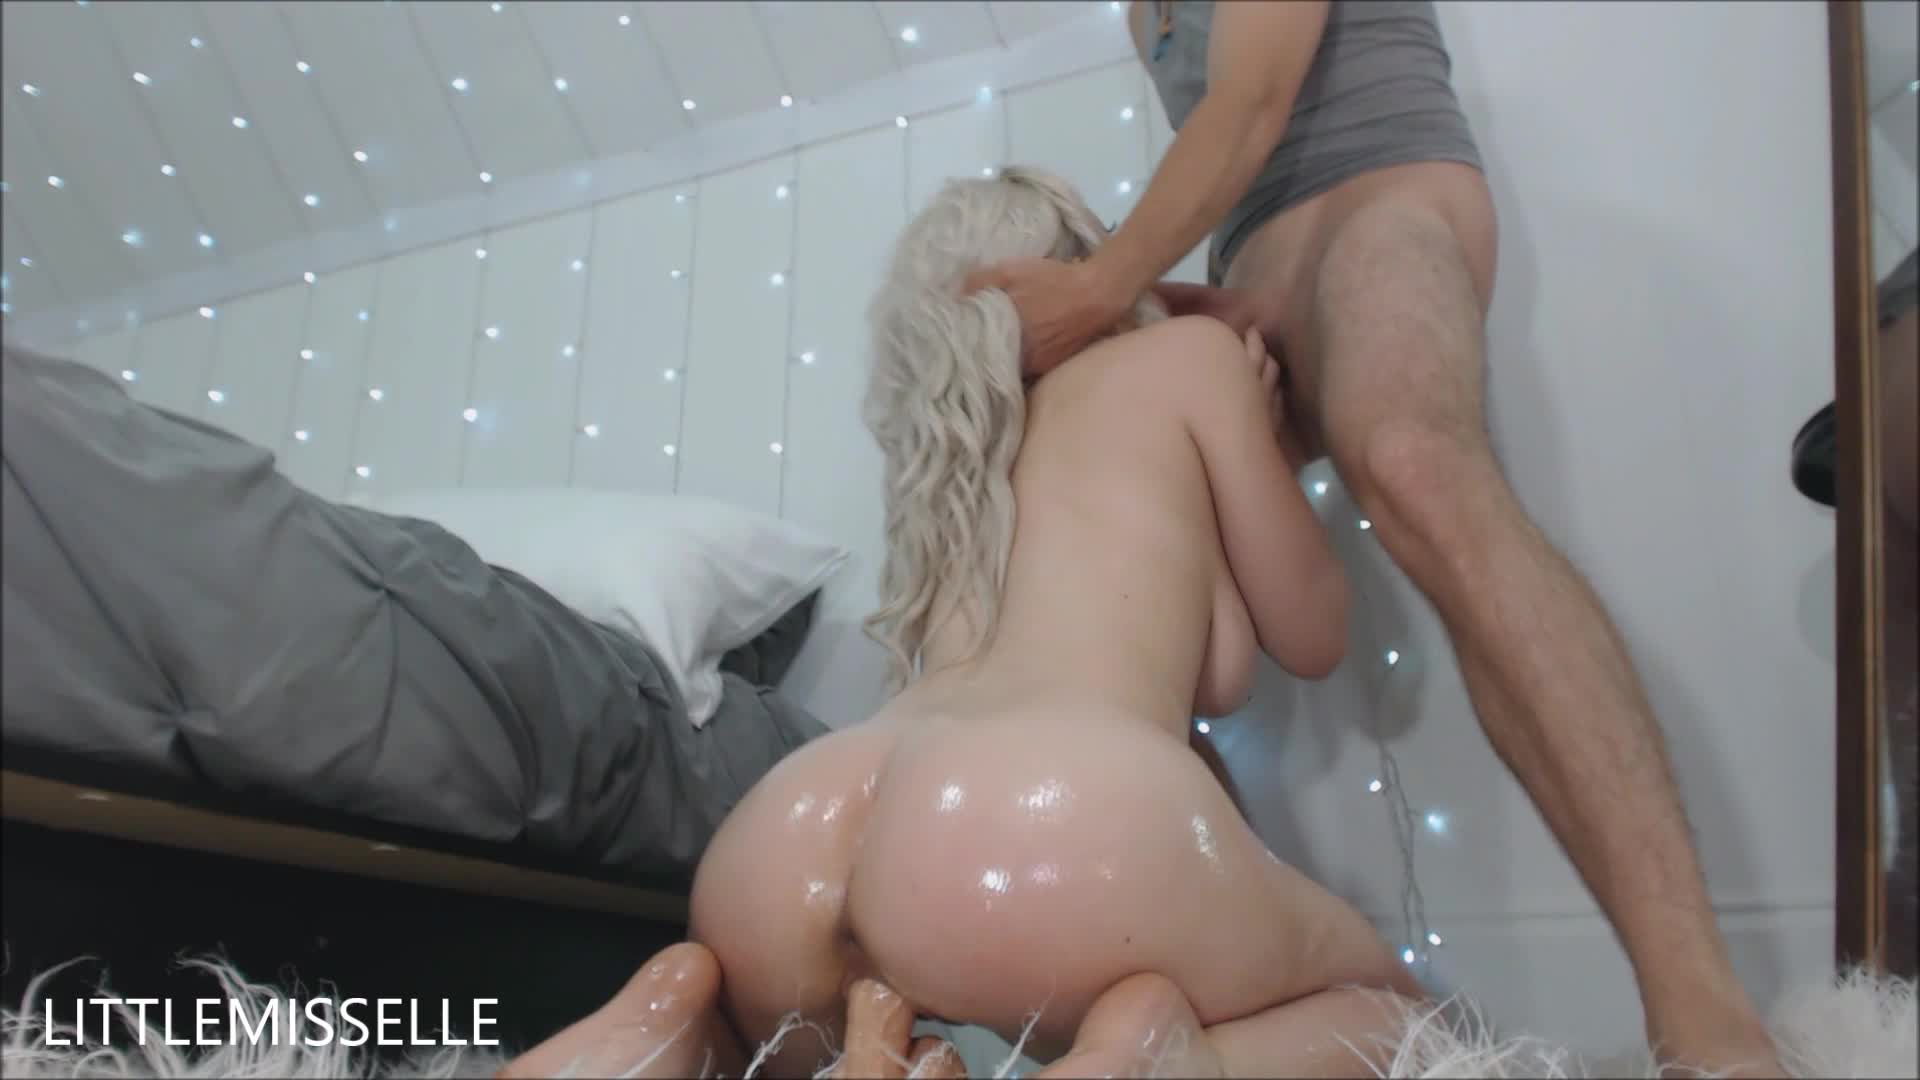 Fucks Dildo While Sucking Cock